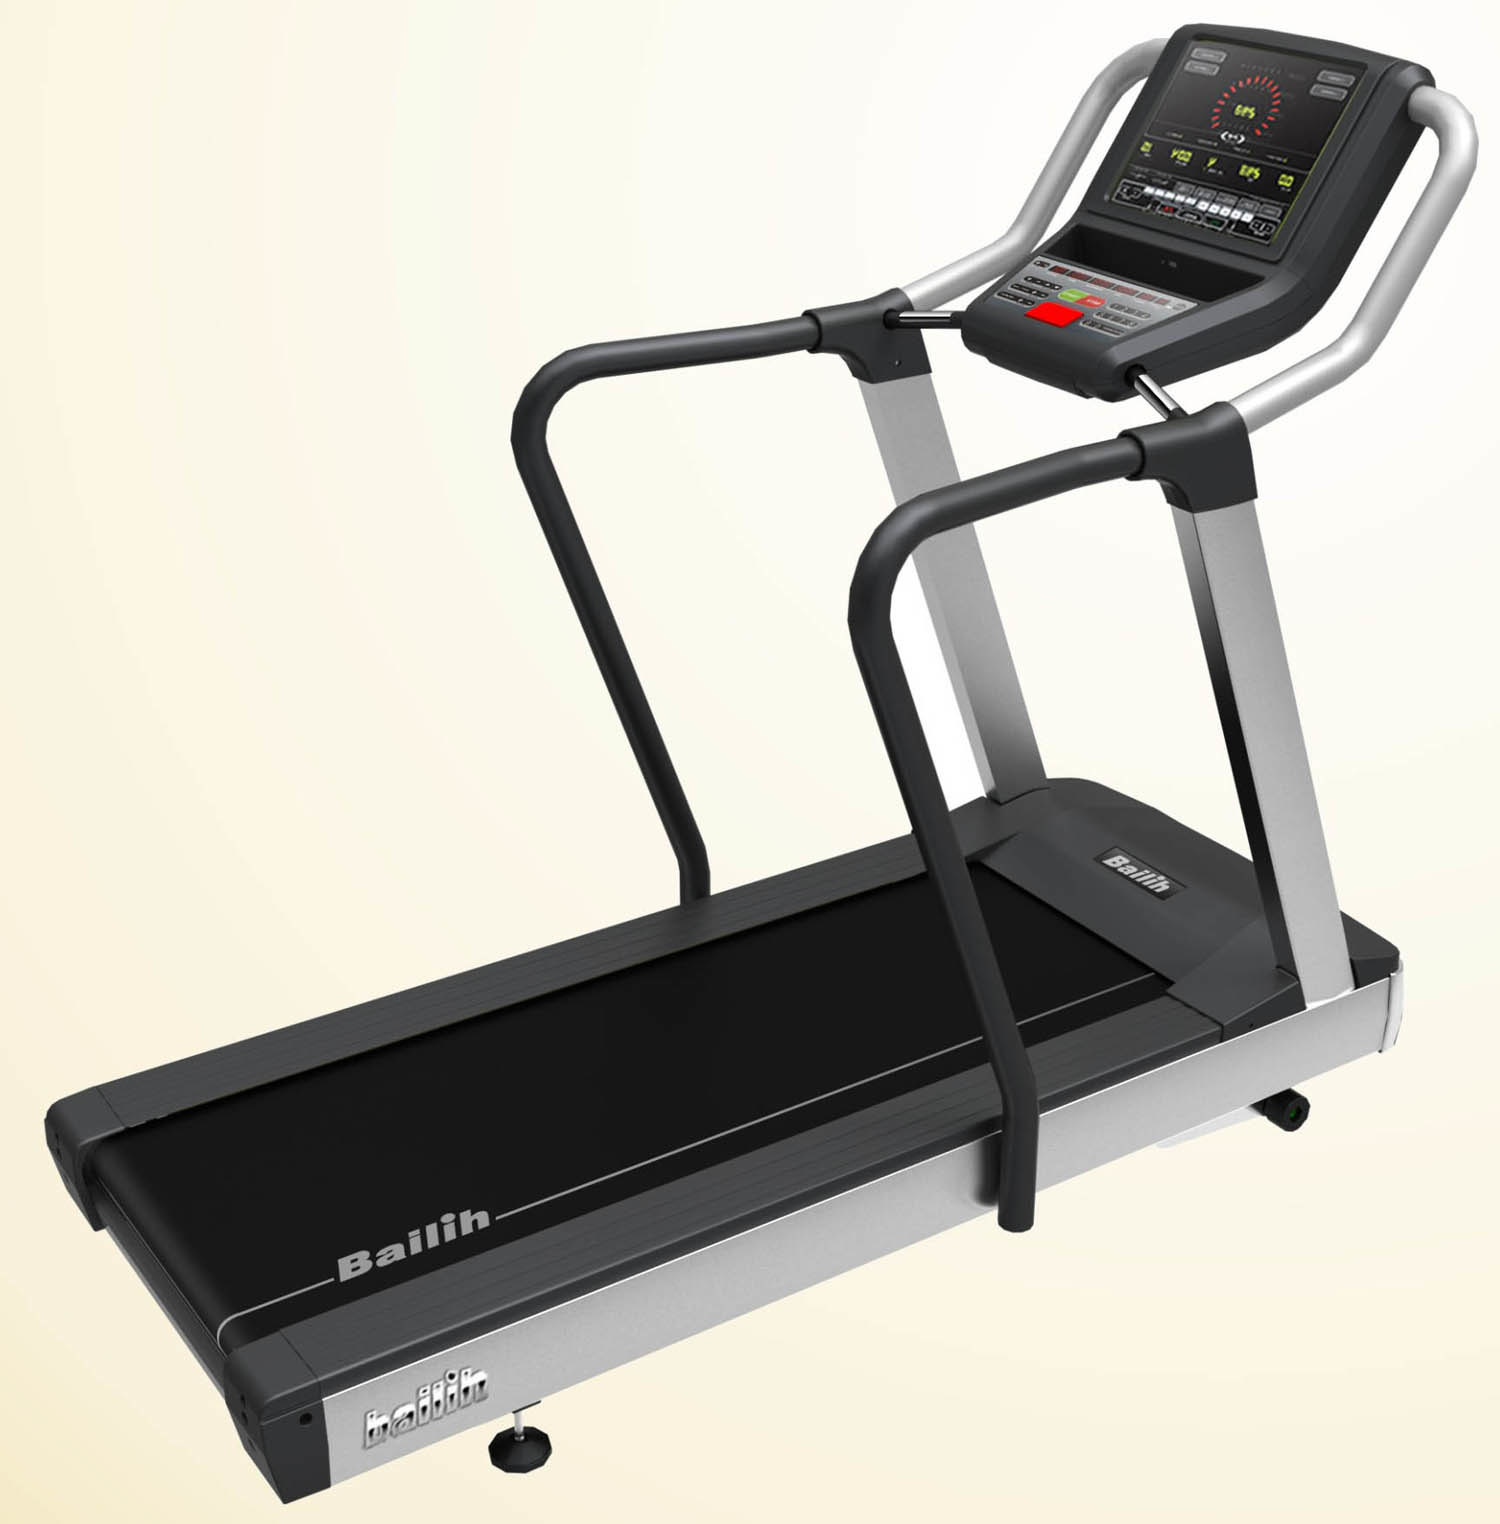 Commercial Treadmill Used: Treadmill Commercial Grade Used, Fitness Trainers Utah 03